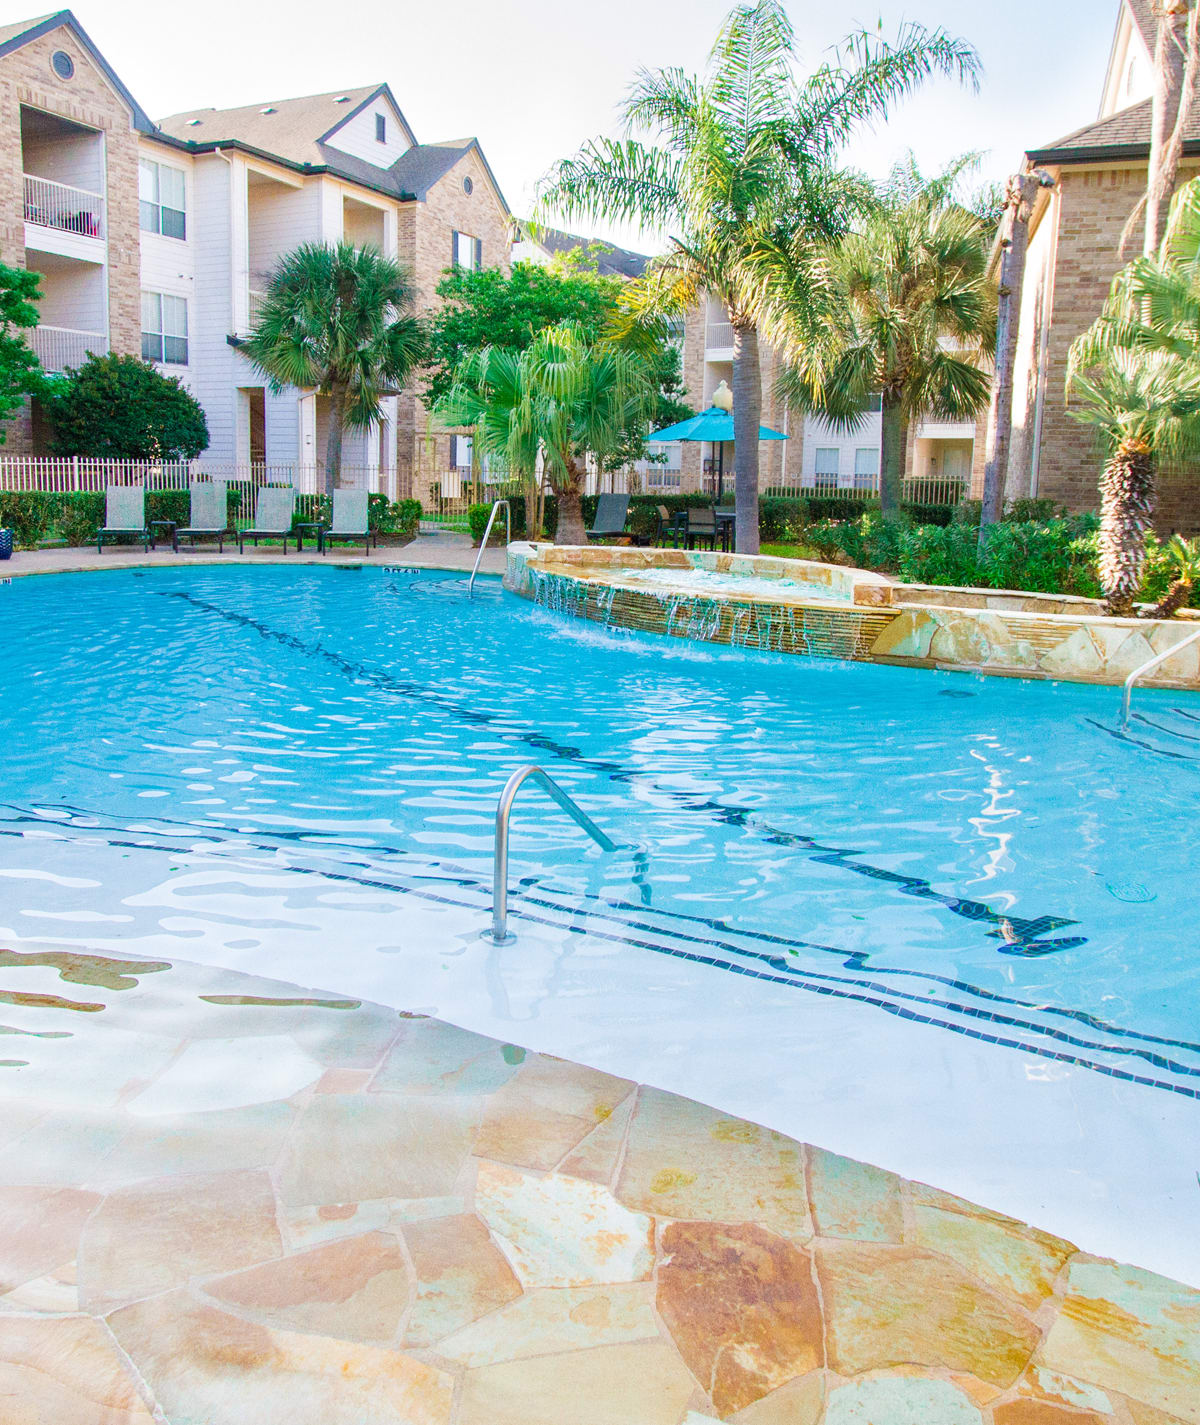 Texas City, TX Apartments For Rent In Galveston County